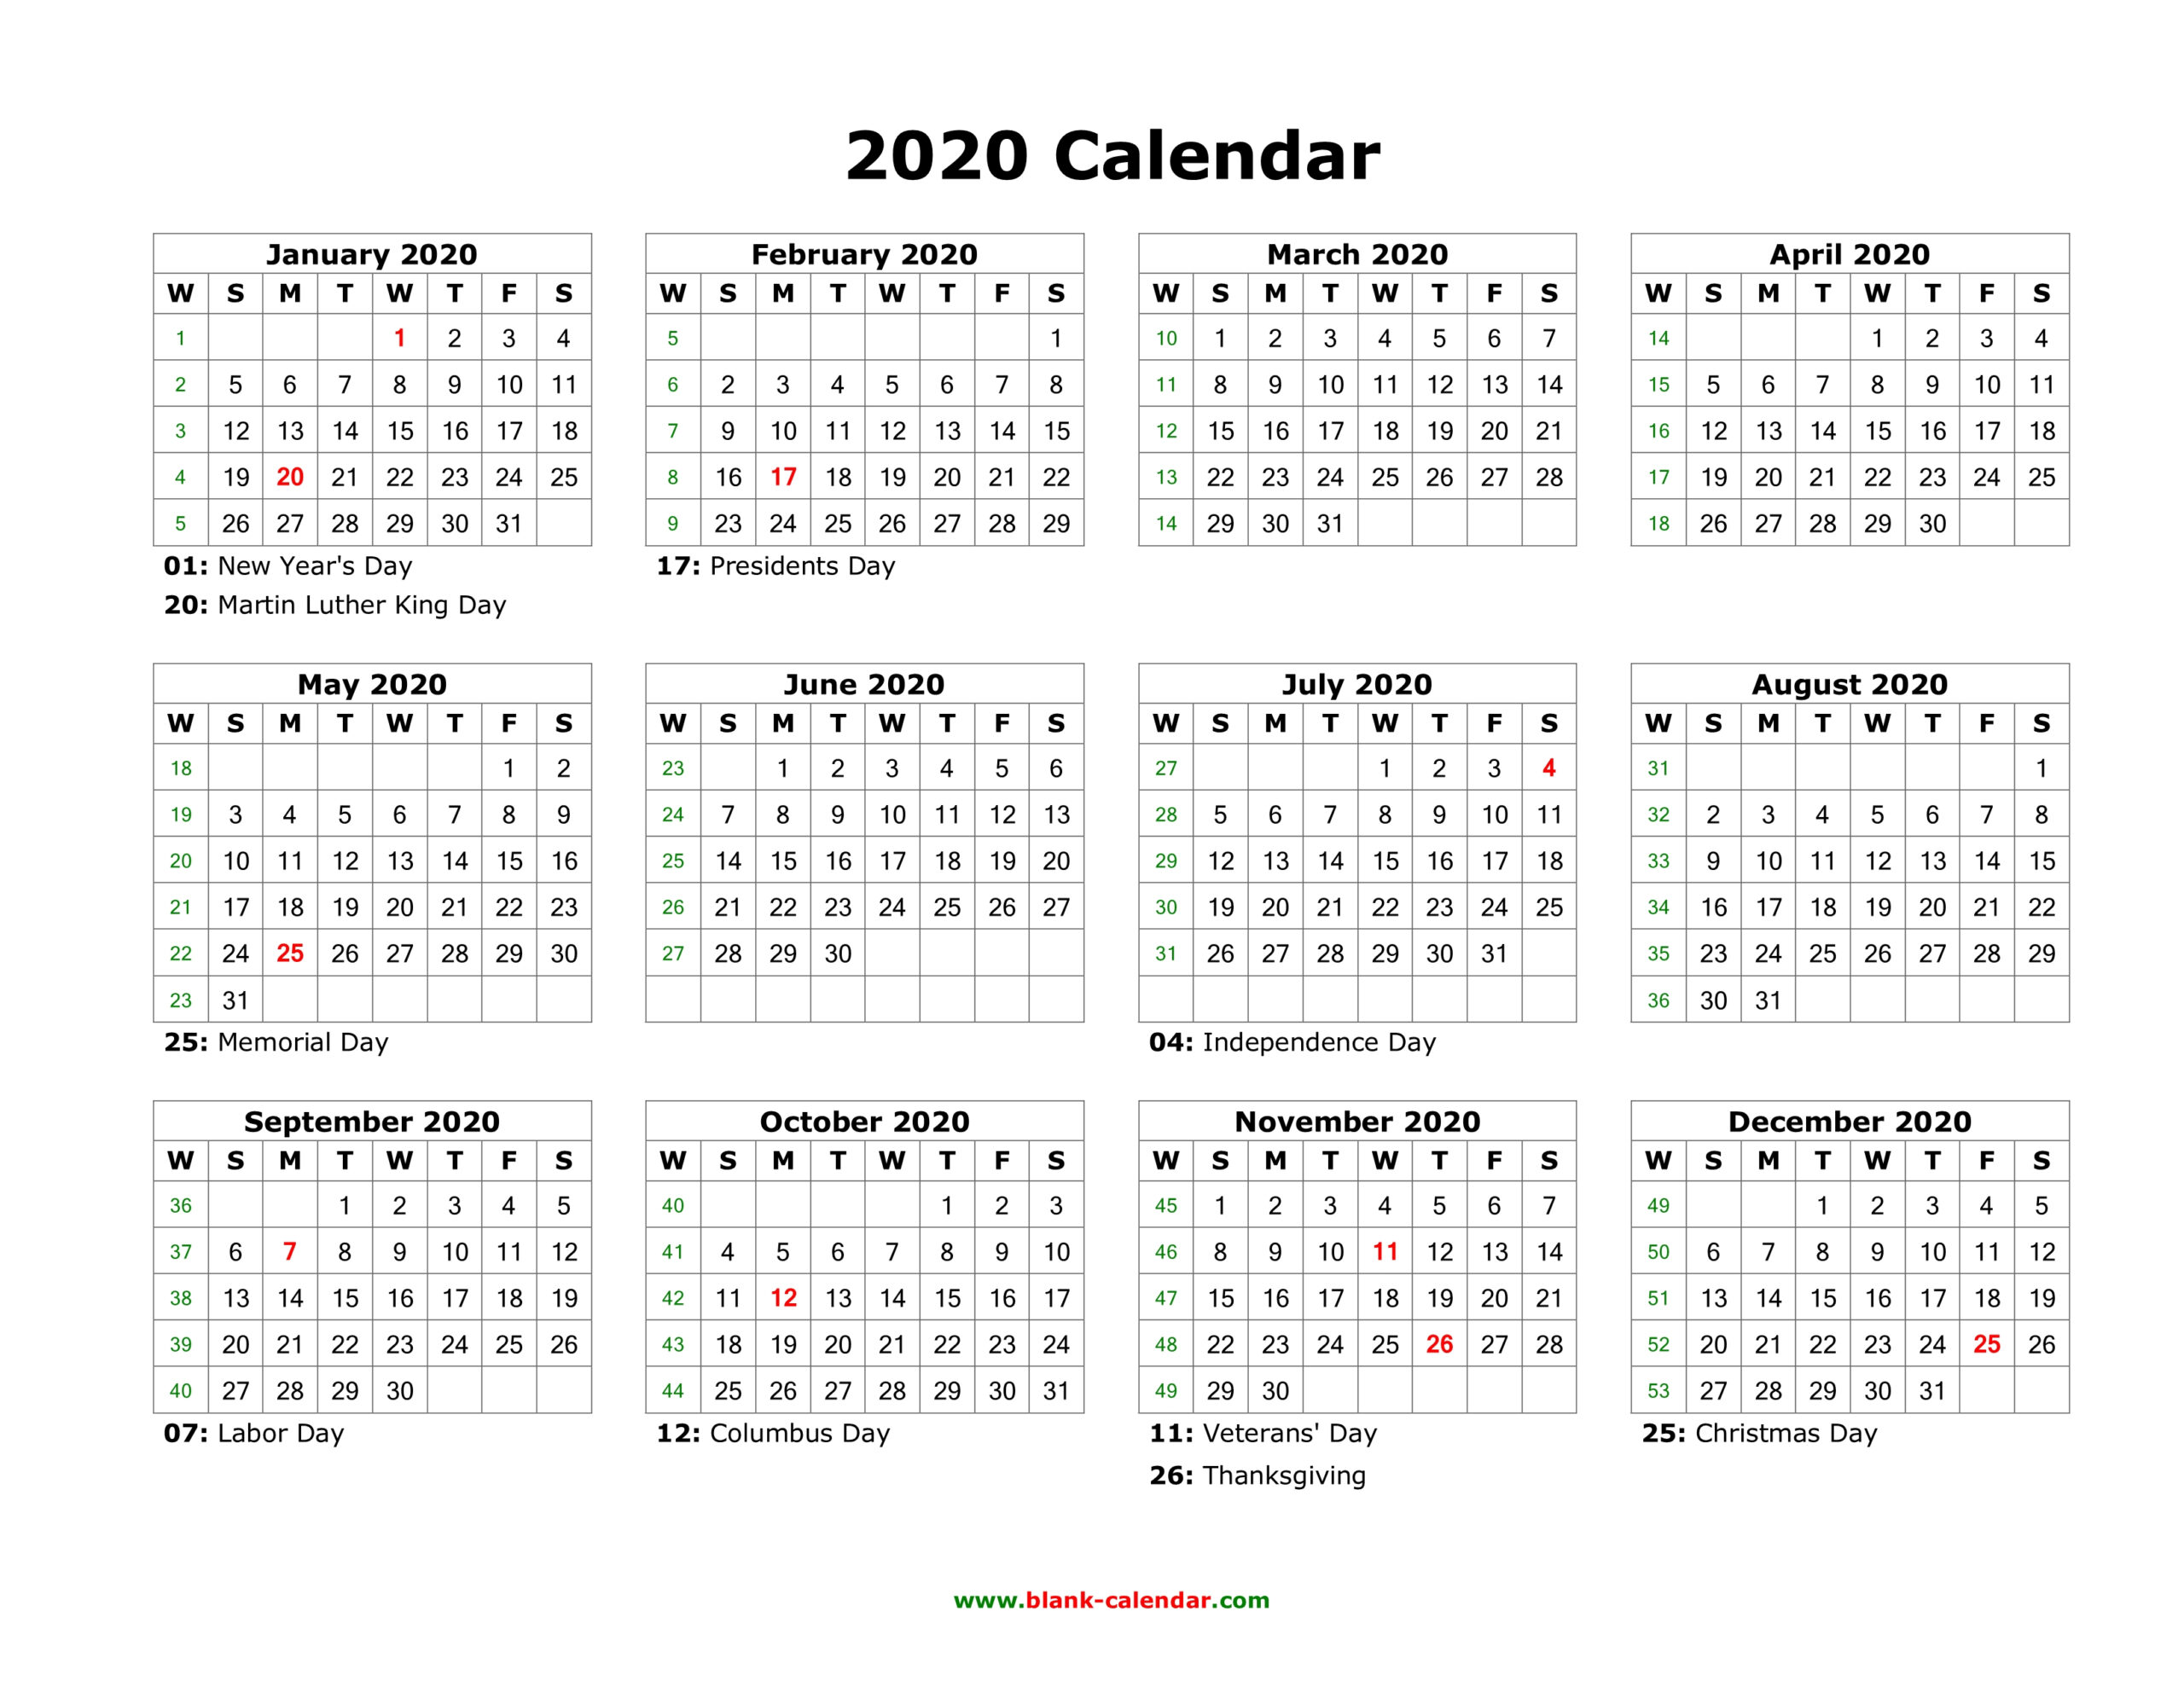 Download Blank Calendar 2020 With Us Holidays (12 Months On